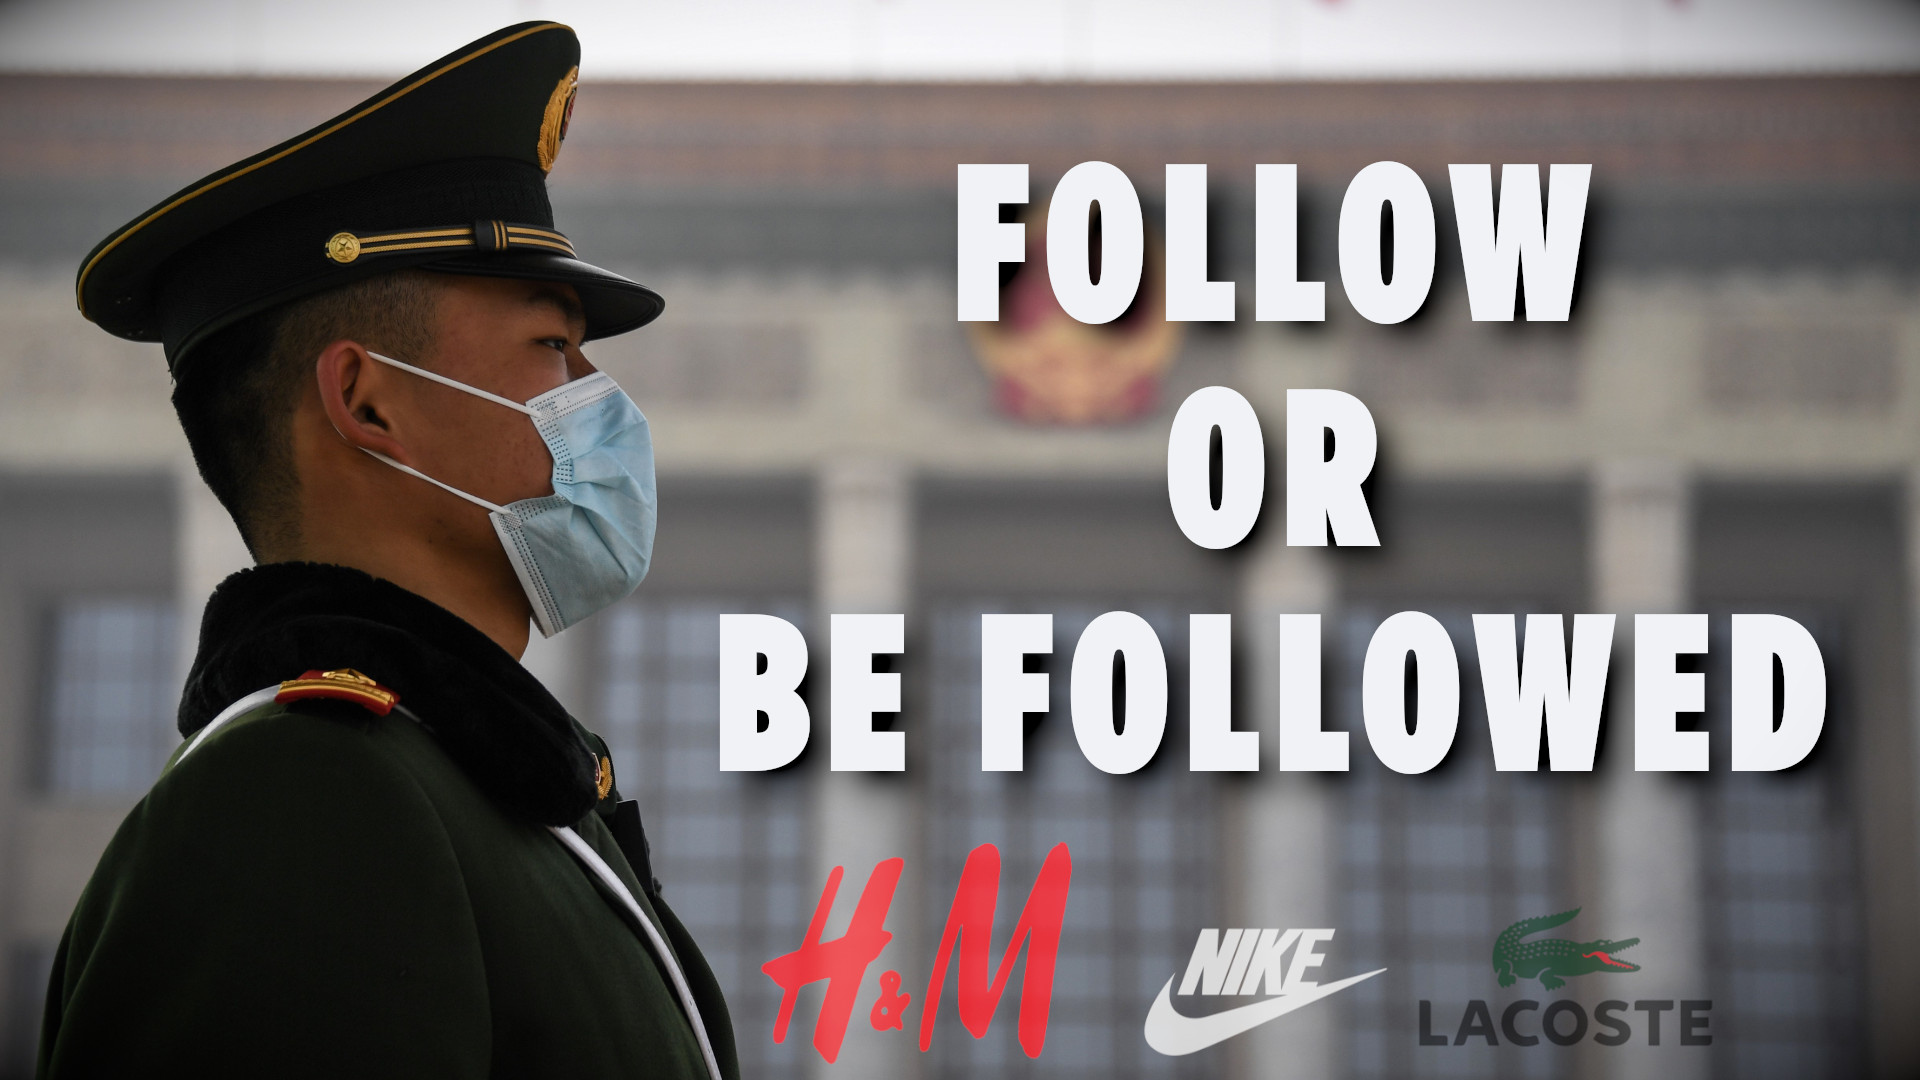 FOLLOW OR BE FOLLOWED - The Perpetrator punished the Innocent. The story of H&M and others